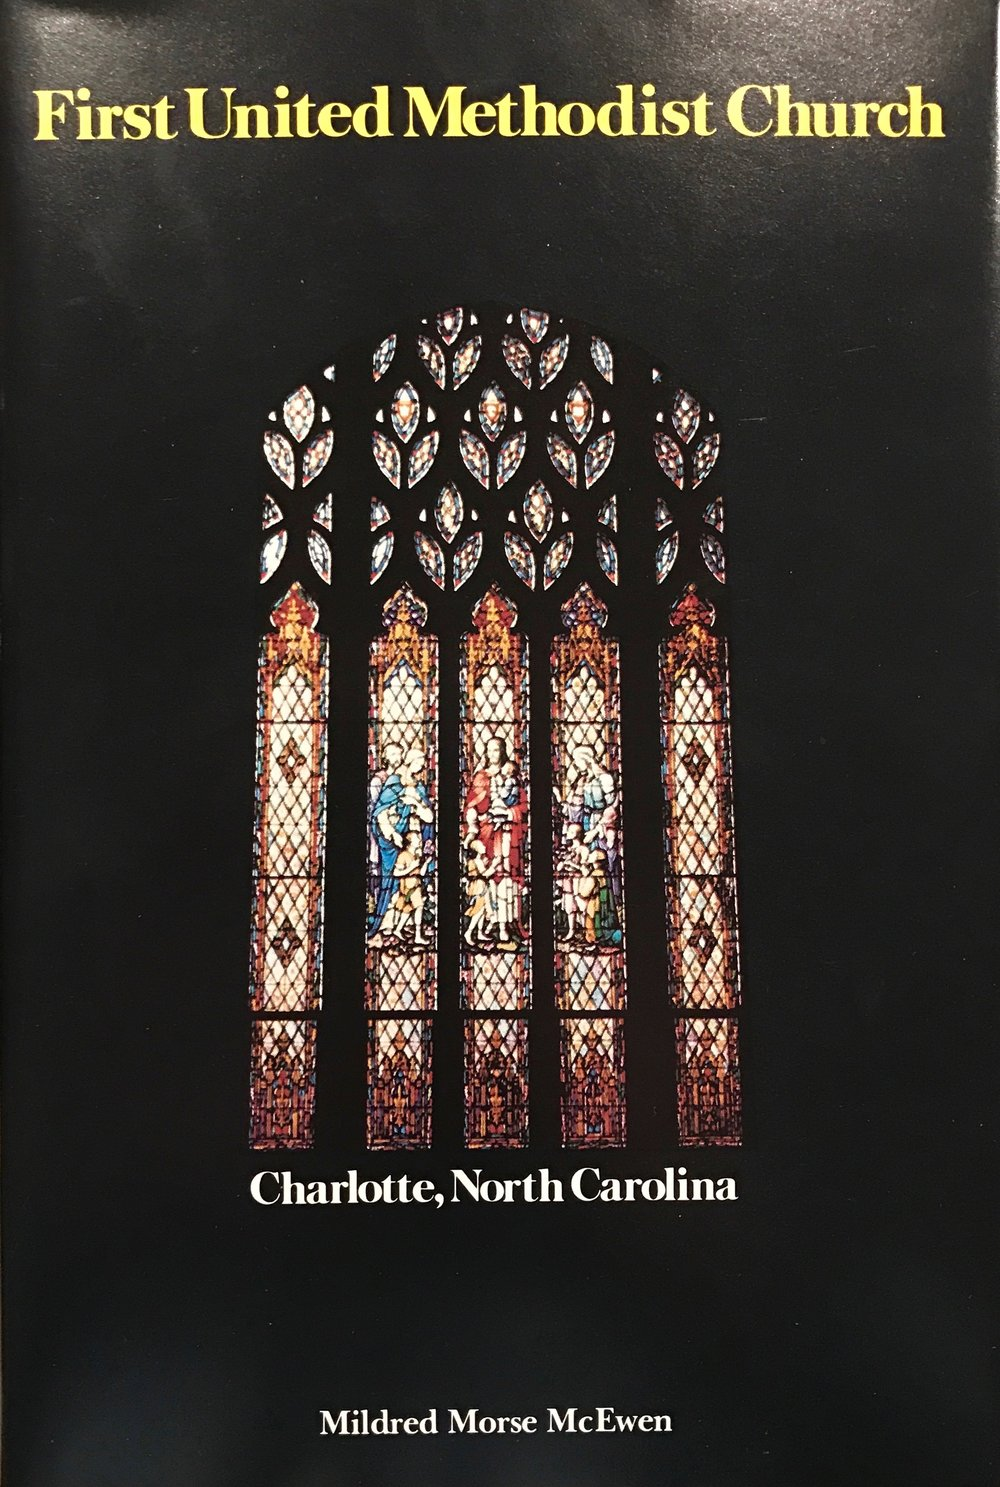 For a thorough recounting of the history of First Methodist Charlotte, pick up a copy of Mildred McEwen's book from the 1980s. You can still find used copies on Amazon.